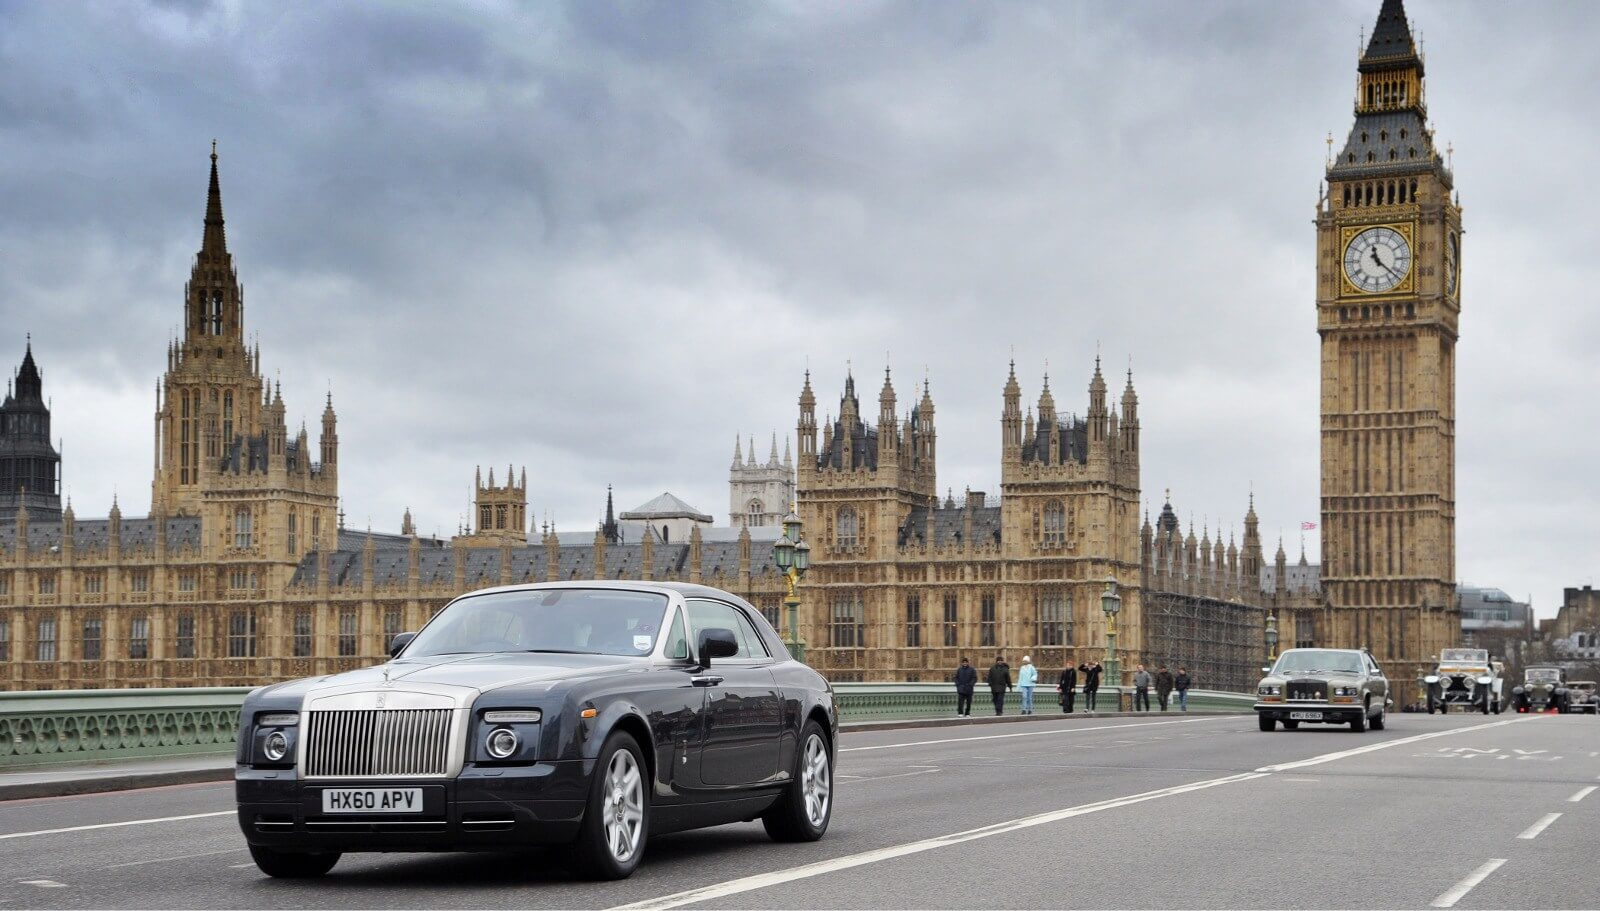 #10 Rolls Royce Rental | Luxury Things To Do In London | Image Source: bmwblog.com